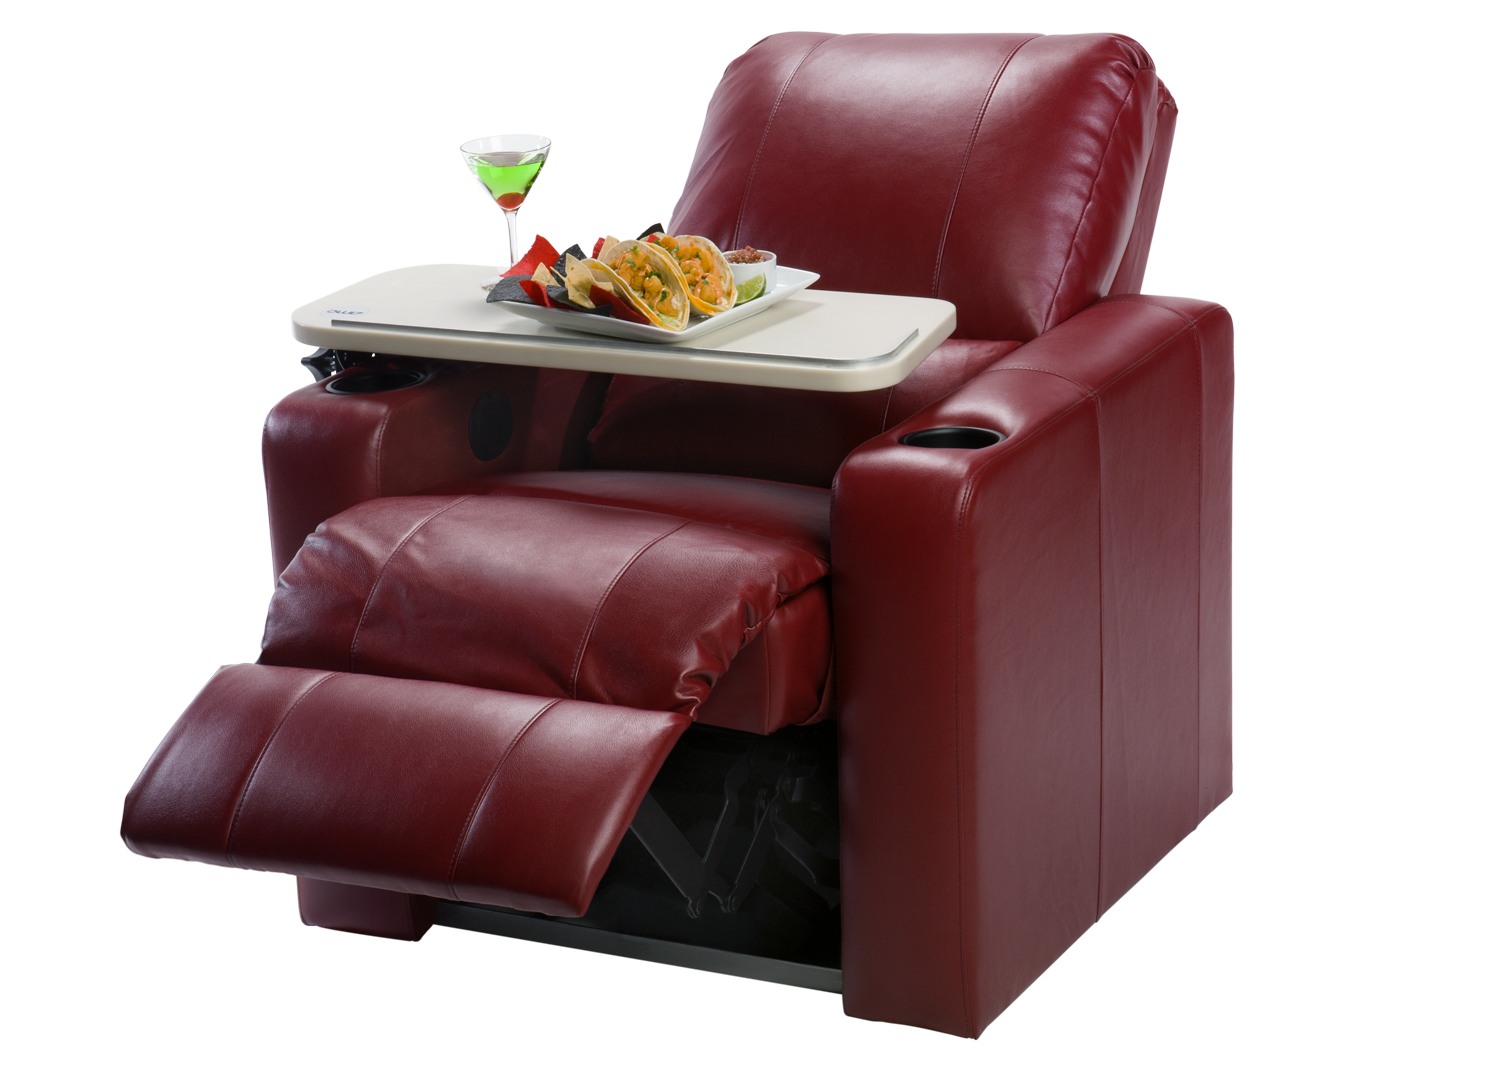 Awe Inspiring Recliner Seating Gmtry Best Dining Table And Chair Ideas Images Gmtryco